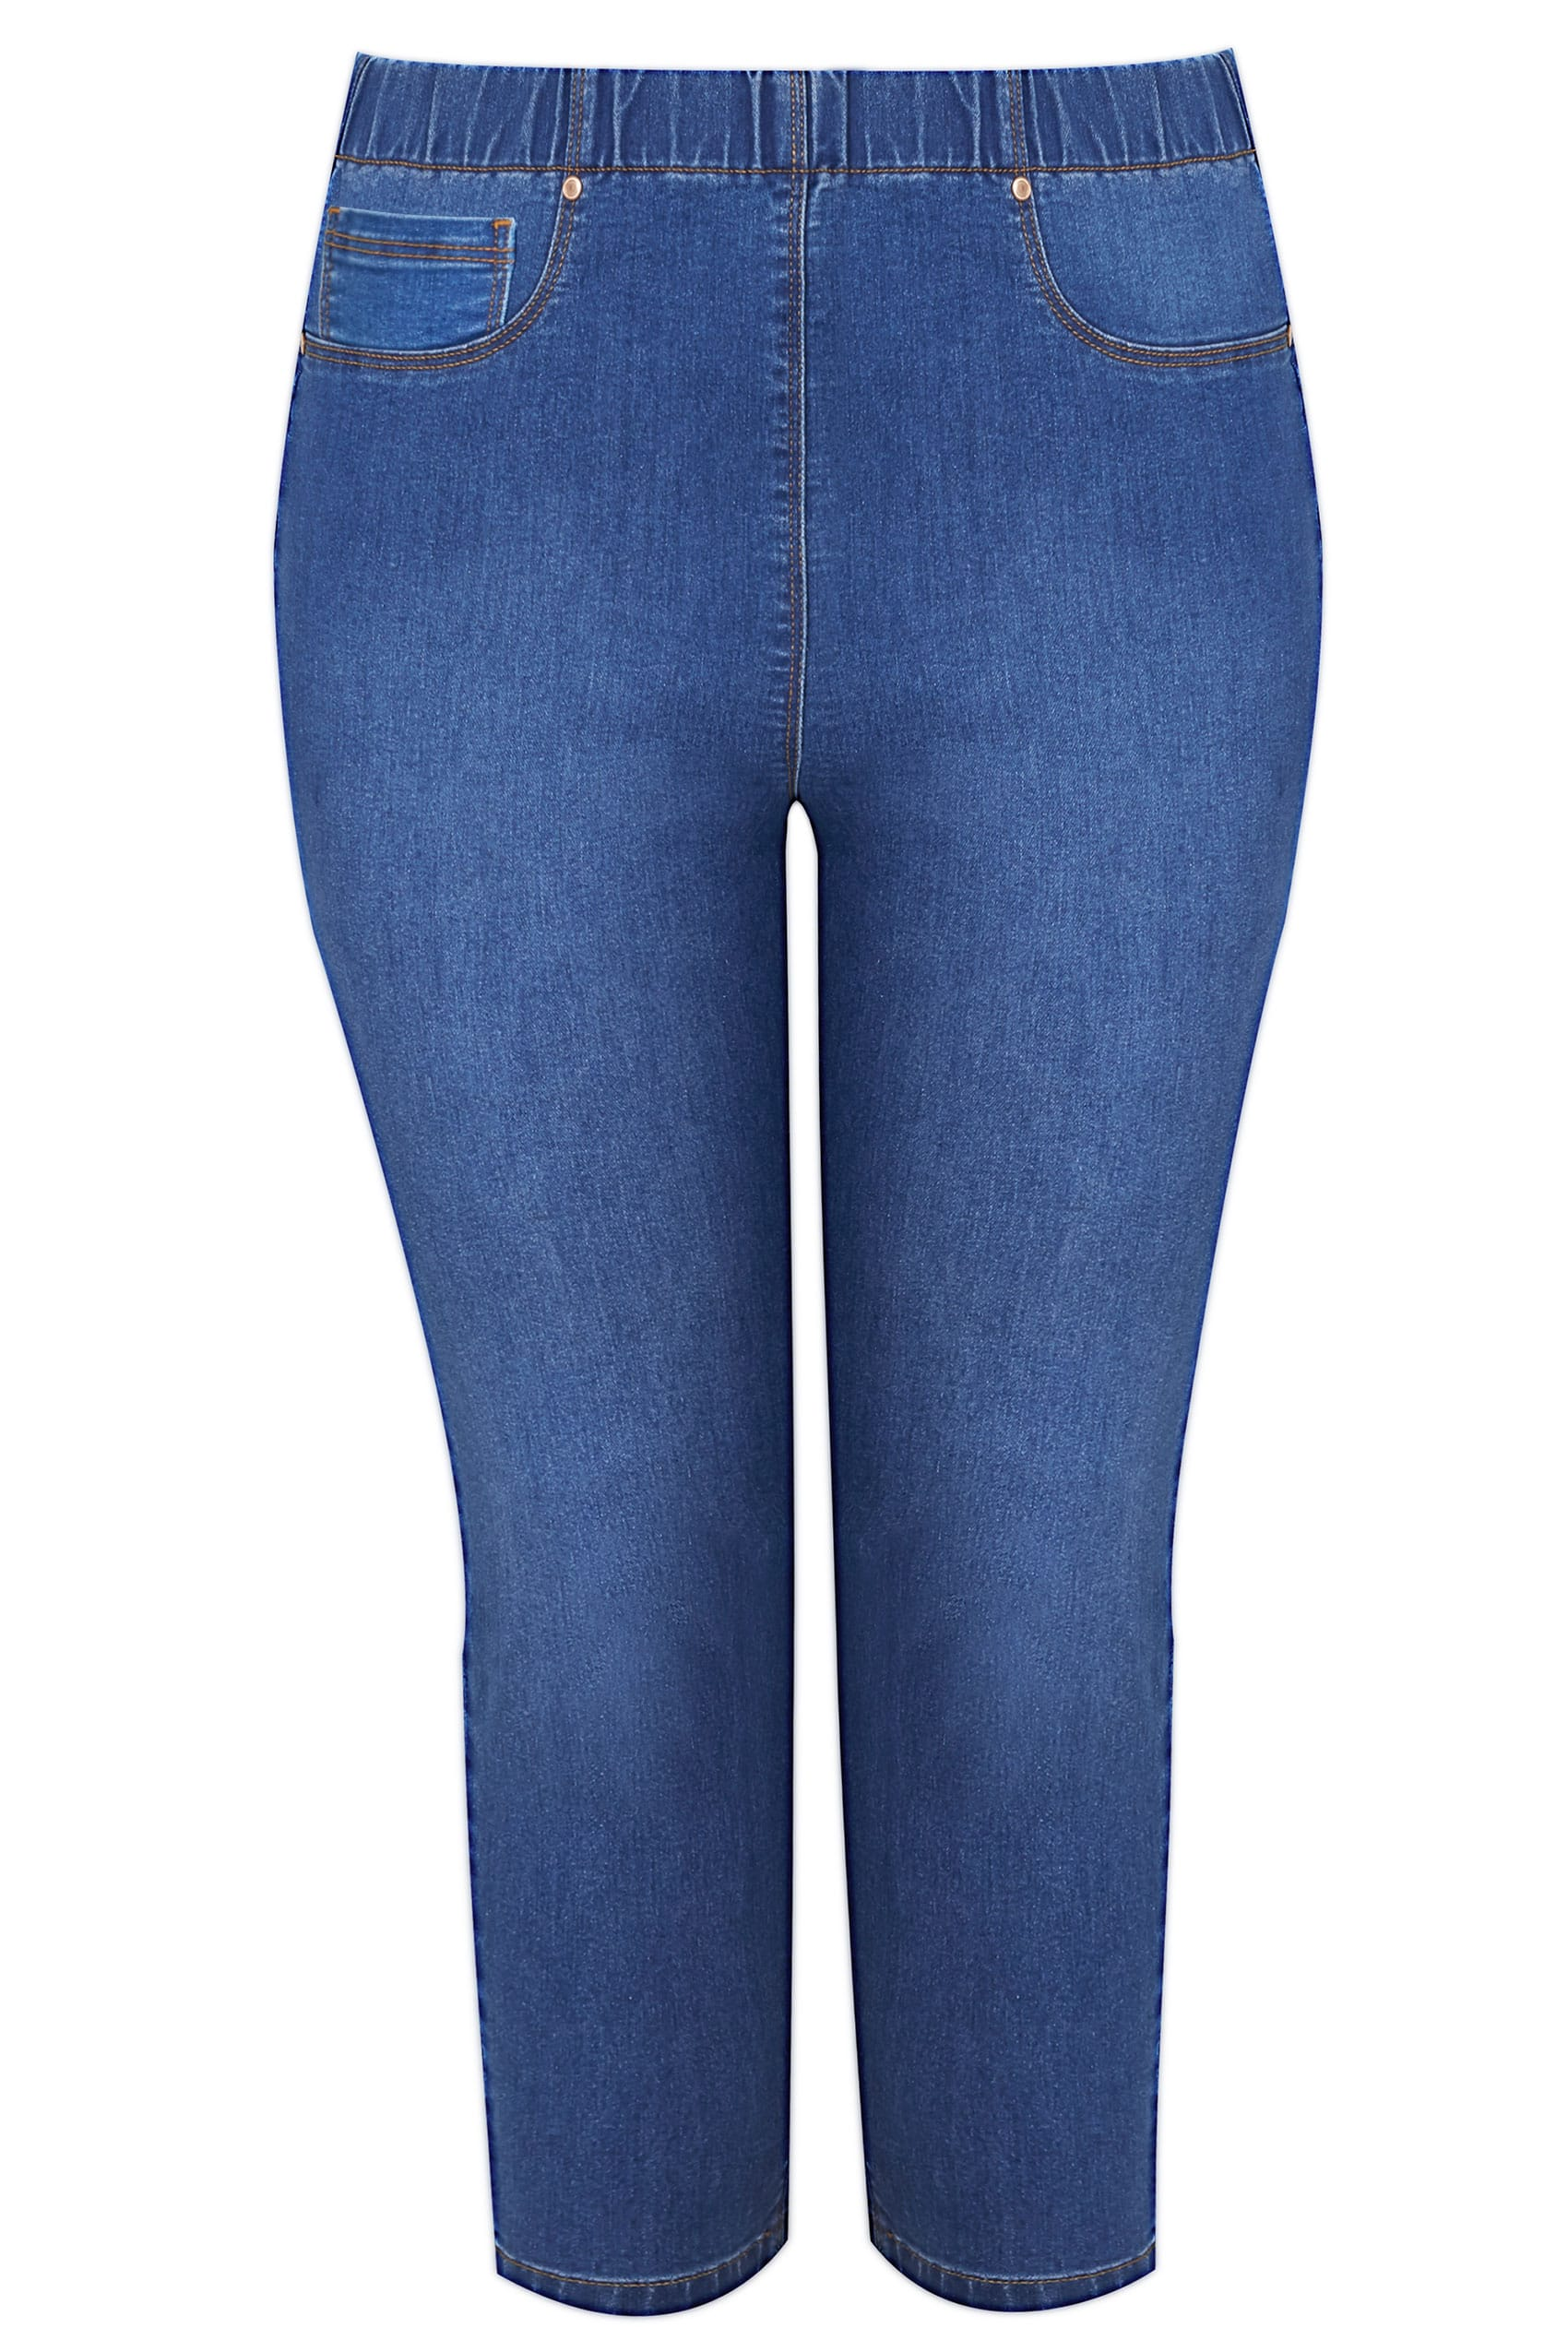 Seven is synonymous with premium denim — the construction is more detailed, the fit is precise, and the quality of the cotton is high, so these jeggings will hold up well for years. The high-gloss finish is edgy without being over-the-top, and practically begs to be worn with pumps for a night out on the town.